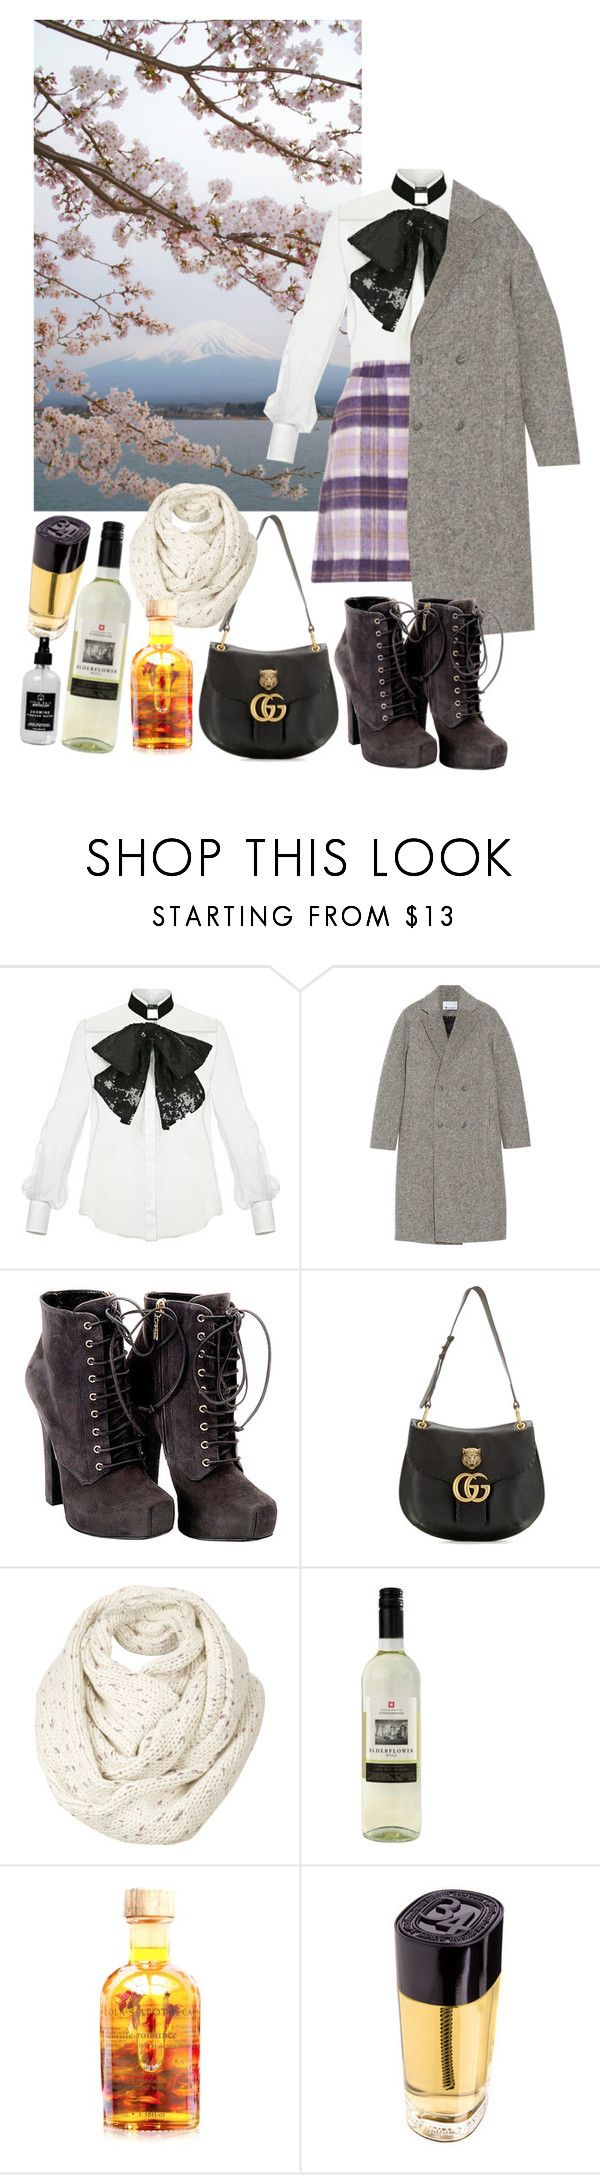 Untitled #438 by danielagreg on Polyvore featuring Elisabetta Franchi, T By Alexander Wang, Dolce&Gabbana, Gucci, Fat Face, Diptyque, Little Barn Apothecary, Lola's Apothecary and Ultimate